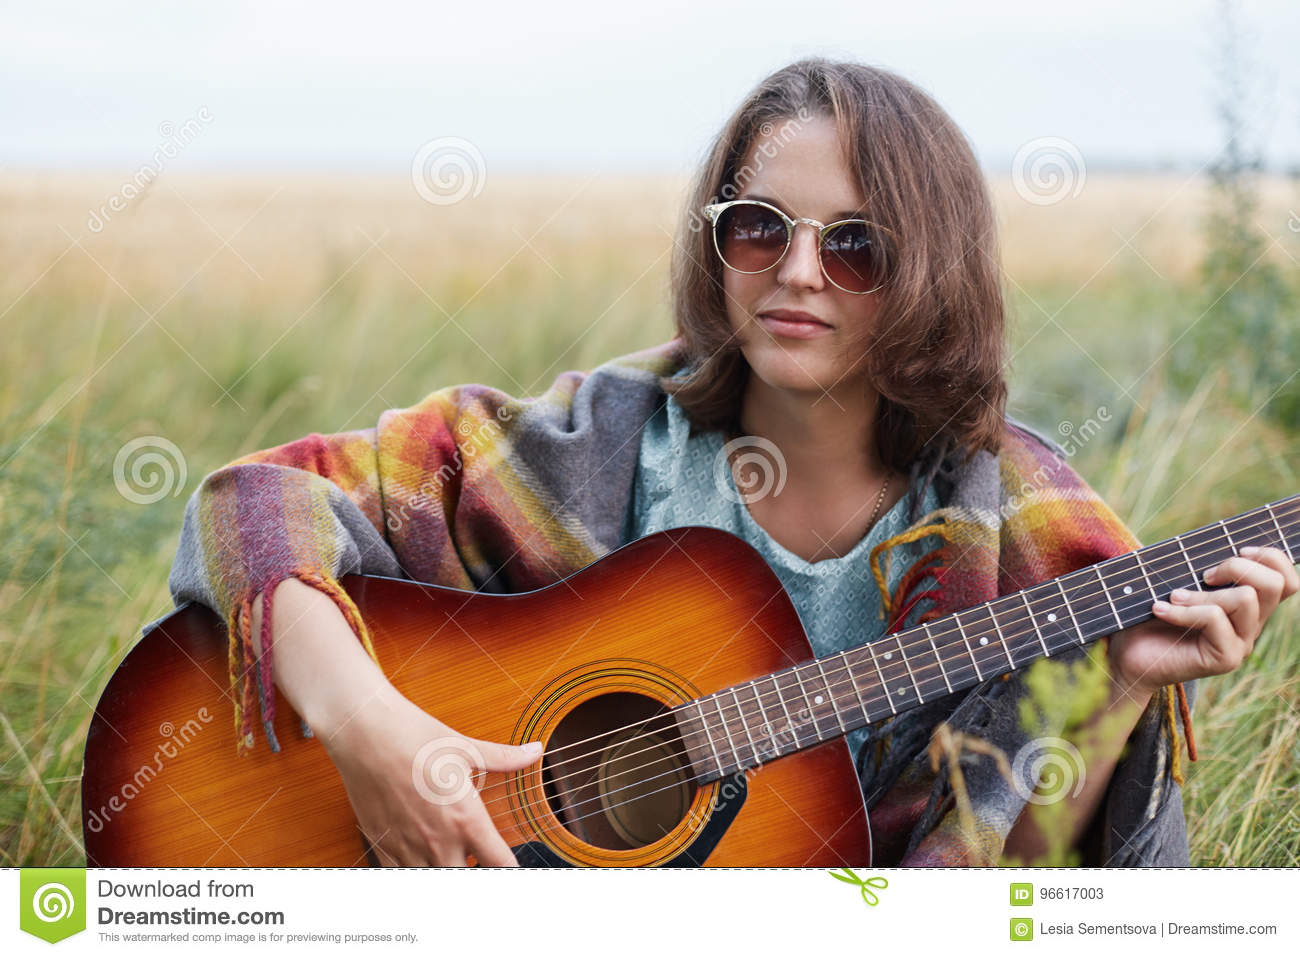 Serious Female With Attractive Appearance Wearing Sunglasses